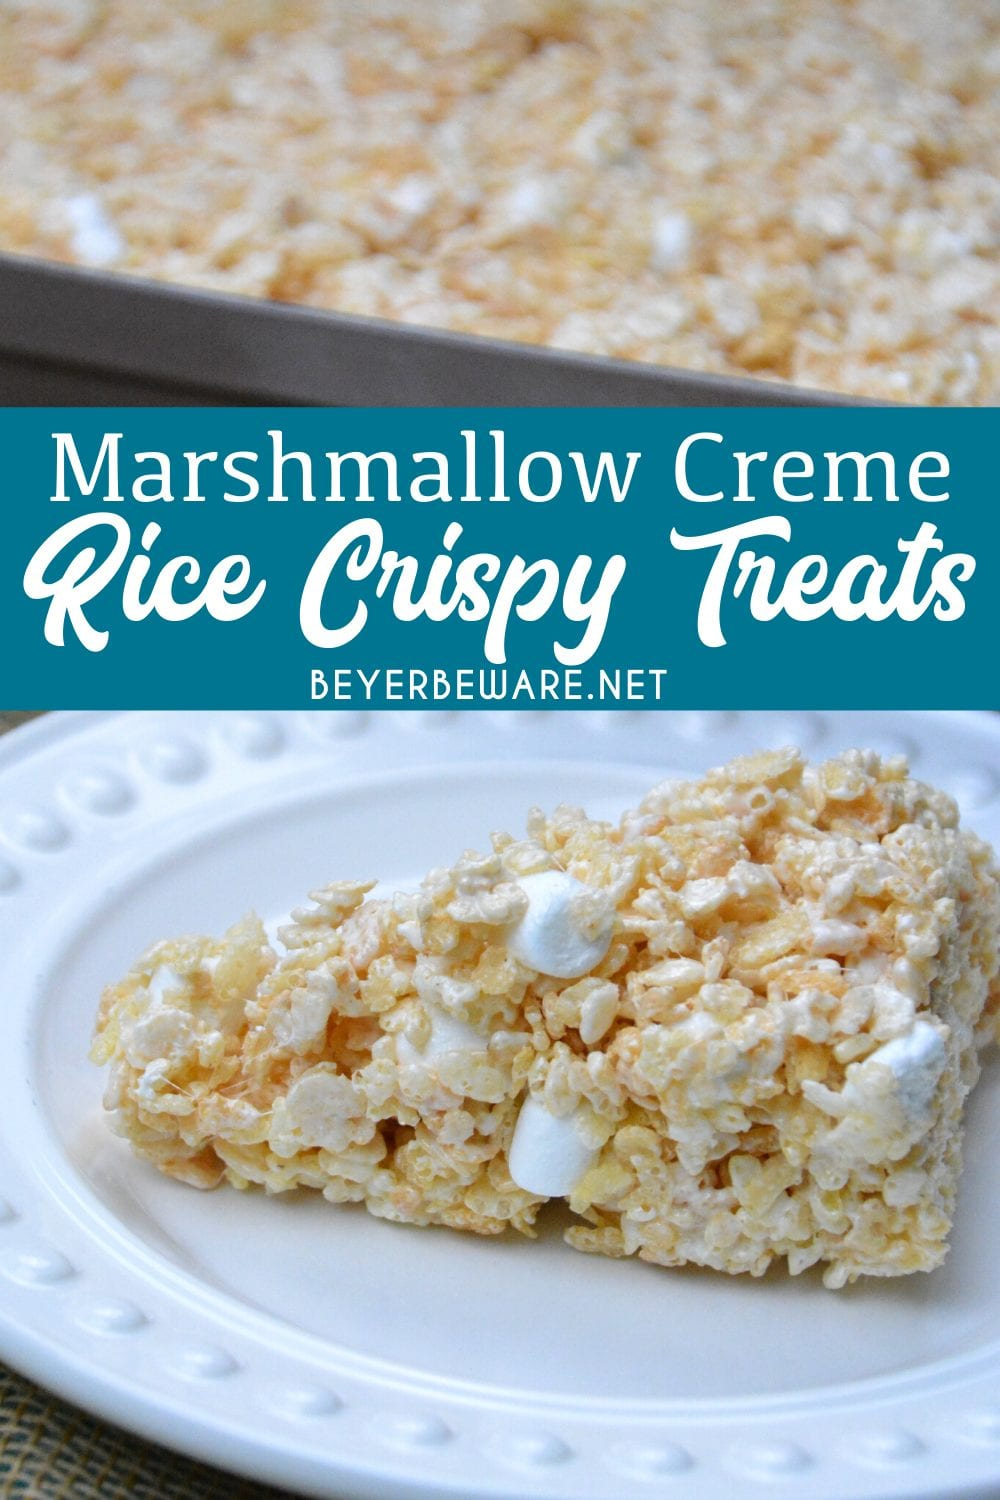 Marshmallow creme rice crispy treats are the no-bake, gluten free dessert every child loves and is so easy to make with marshmallow fluff, butter, marshmallows and Rice Krispies.